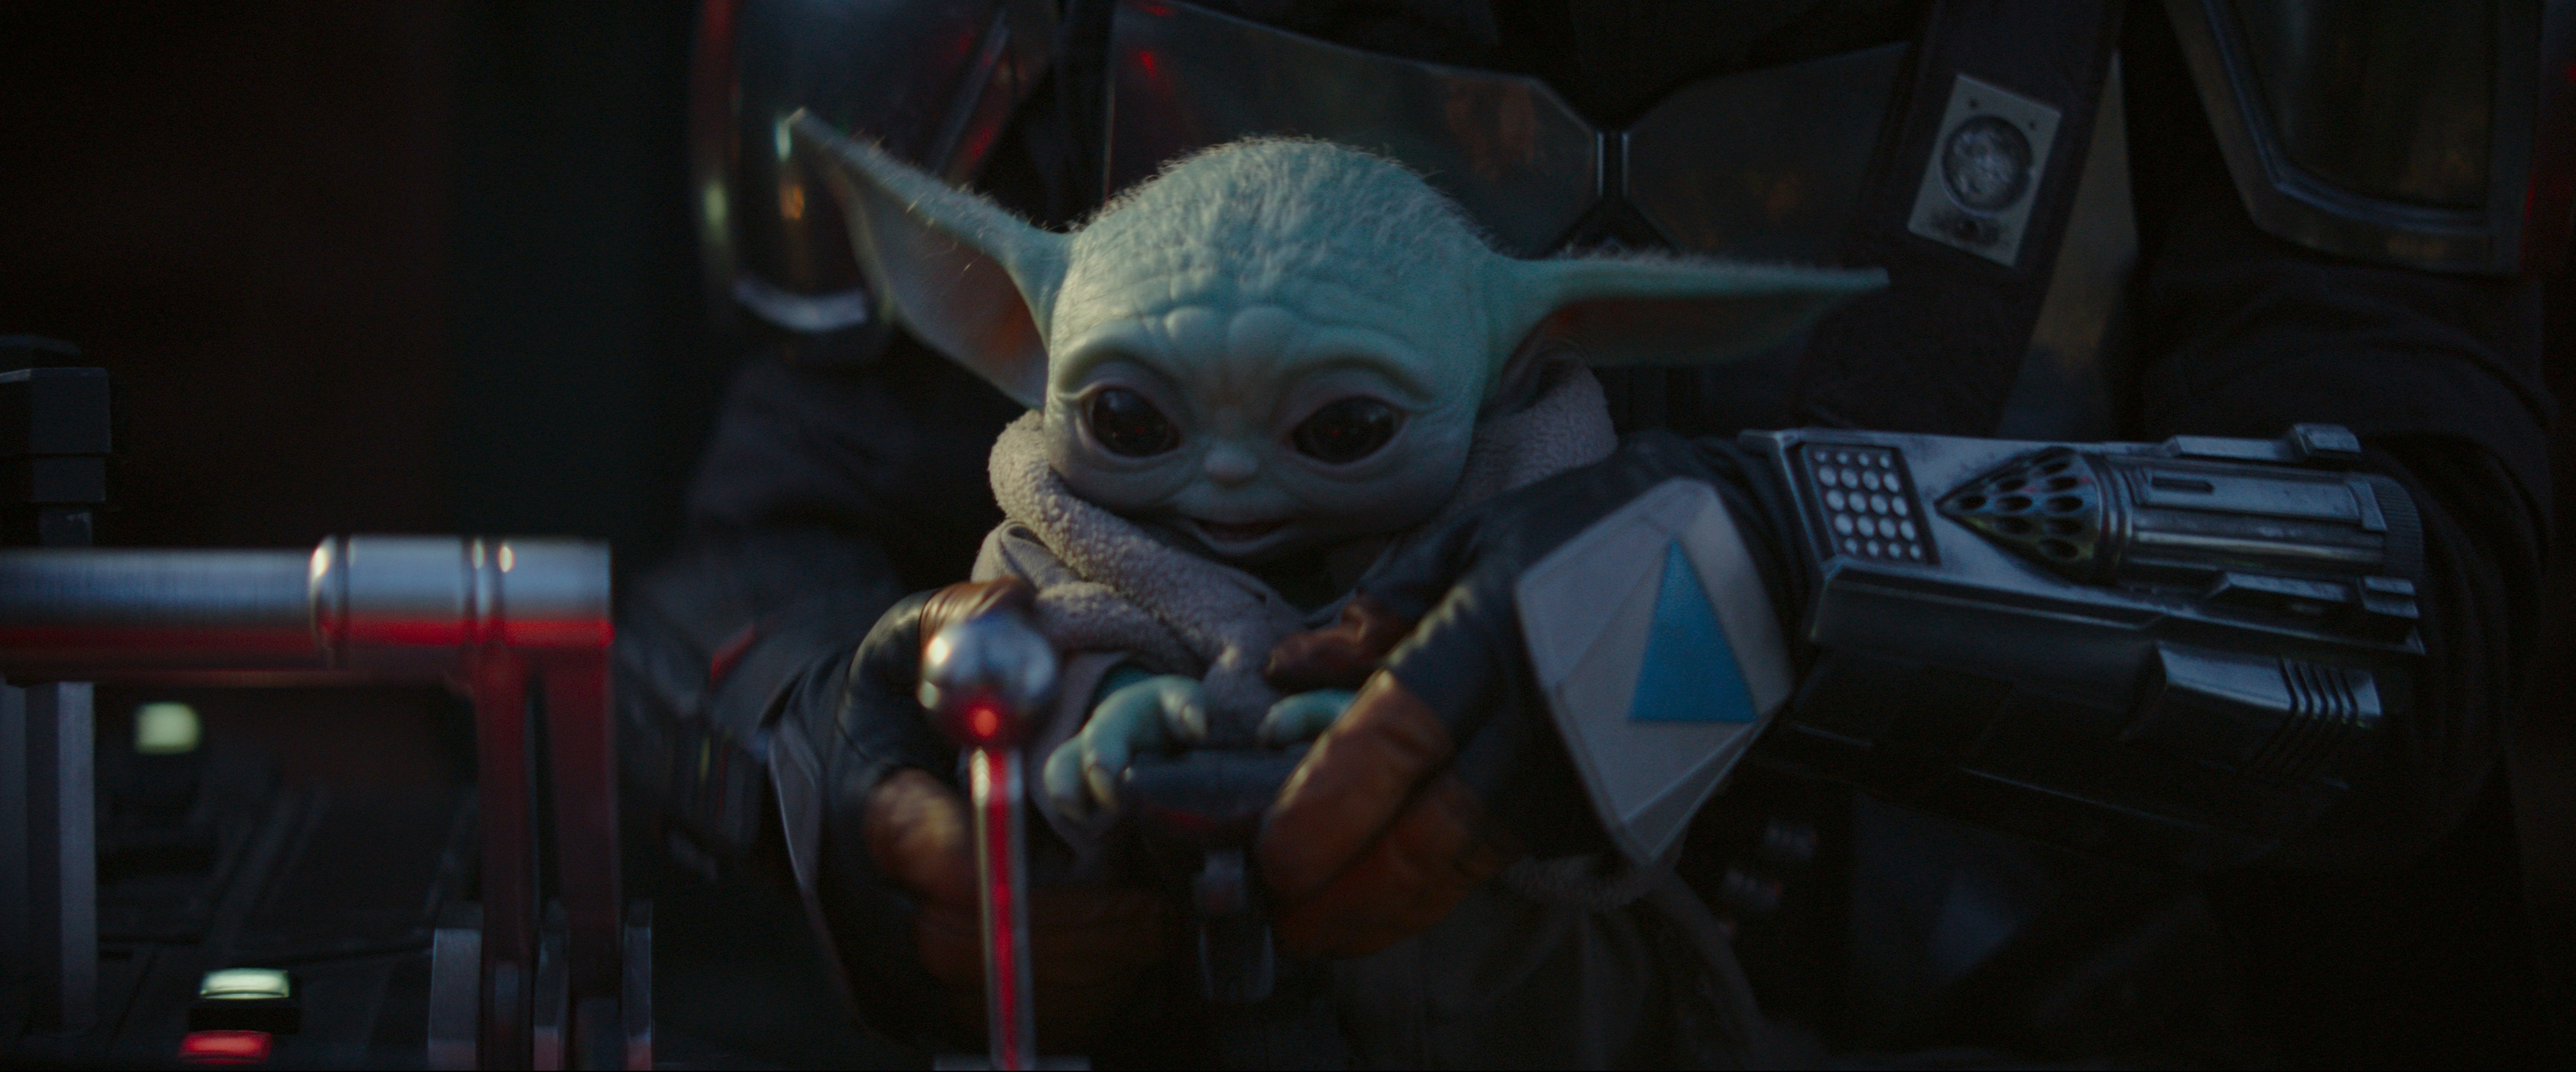 Baby Yoda The Mandalorian 4k Wallpaper Hd Tv Series 4k Wallpapers Images Photos And Background